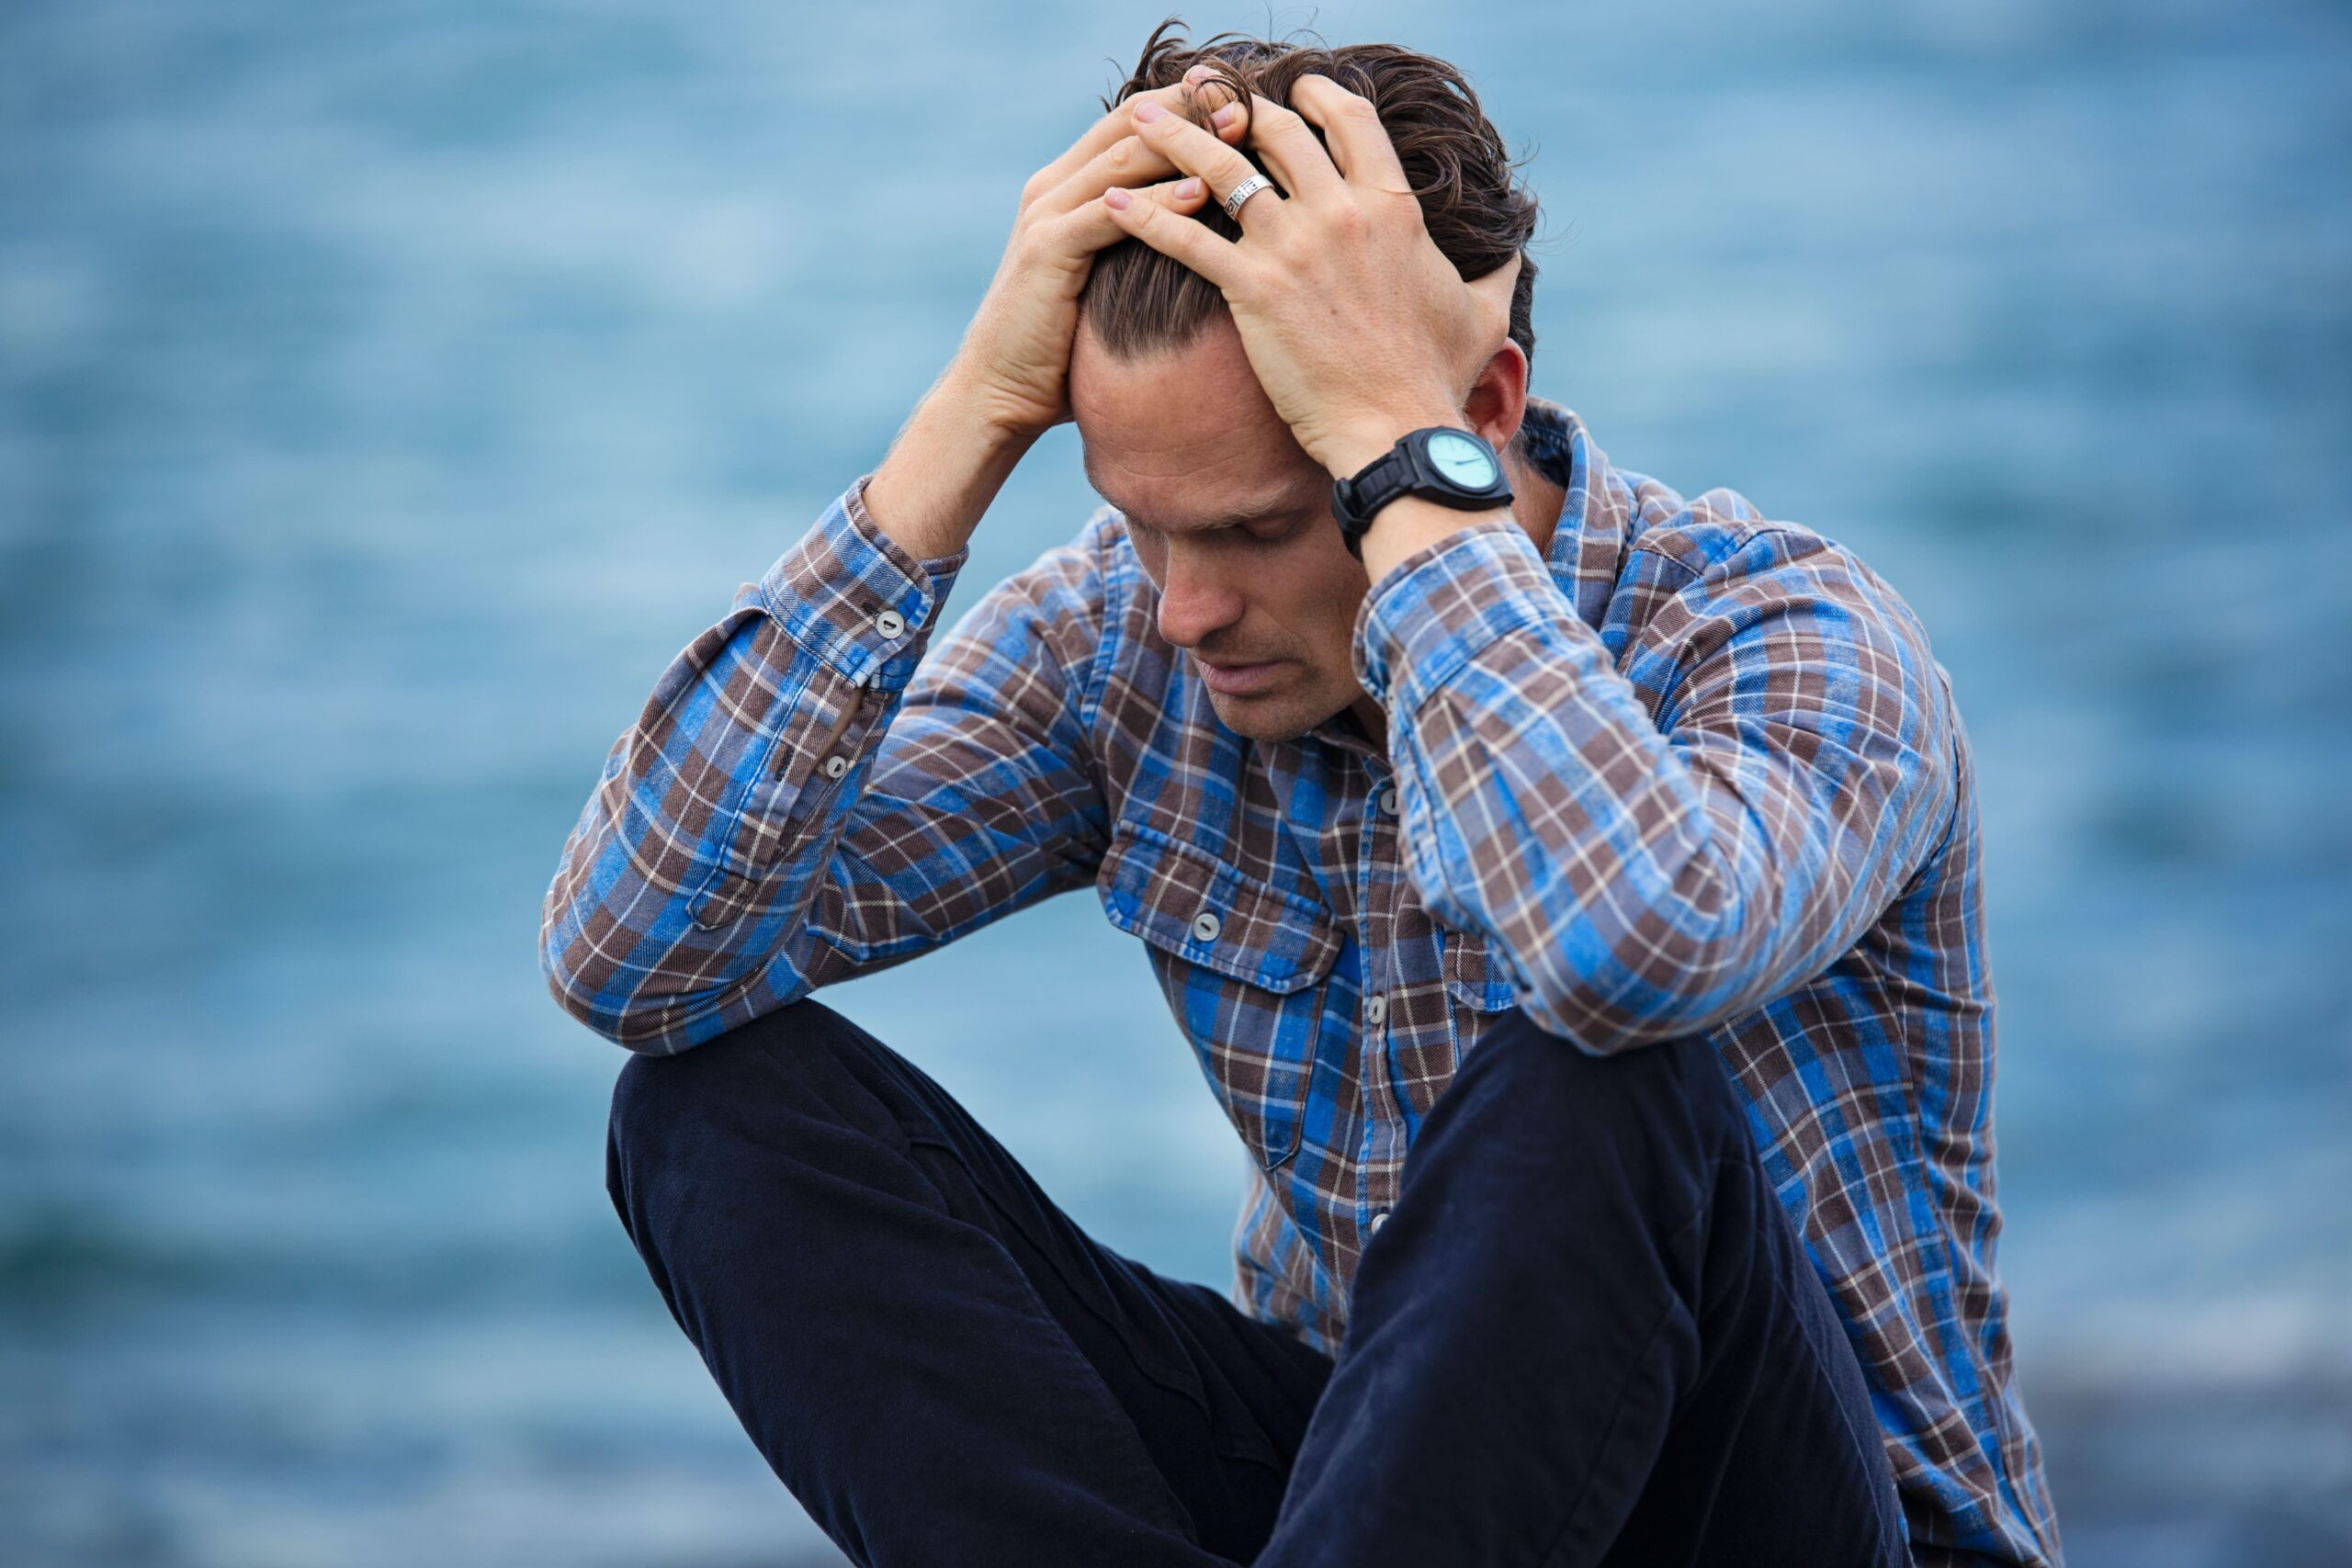 Man sitting next to water holding his head